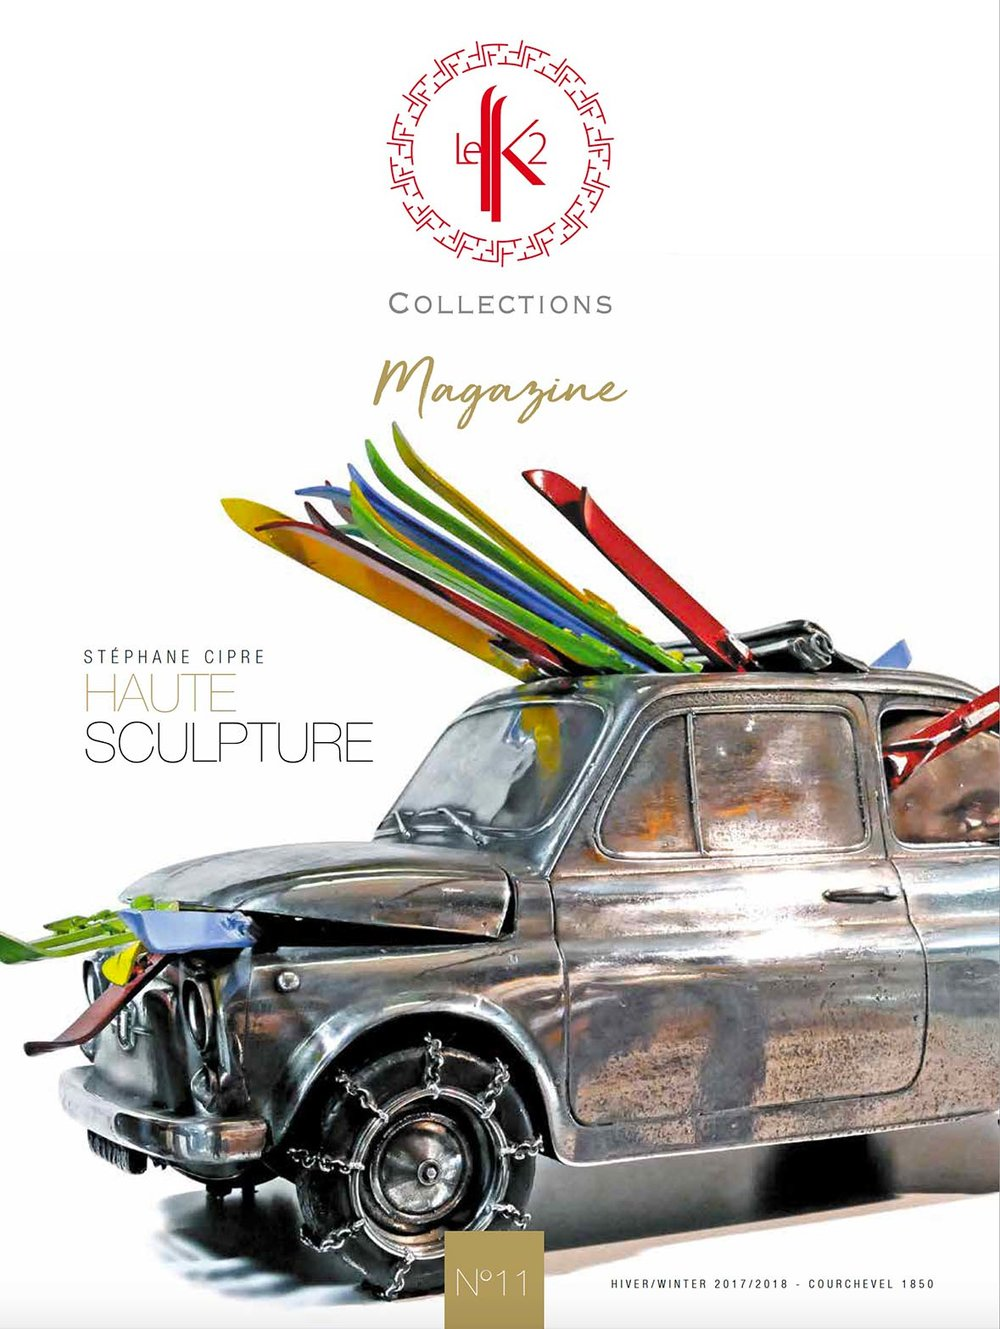 cipre_artiste_sculpteur_exposition_logo_etablissement_luxe_palace_courchevel_le_k2_collections_parutions_couverture_fiat_500_go_to_ski_le_k2_magazine.jpg